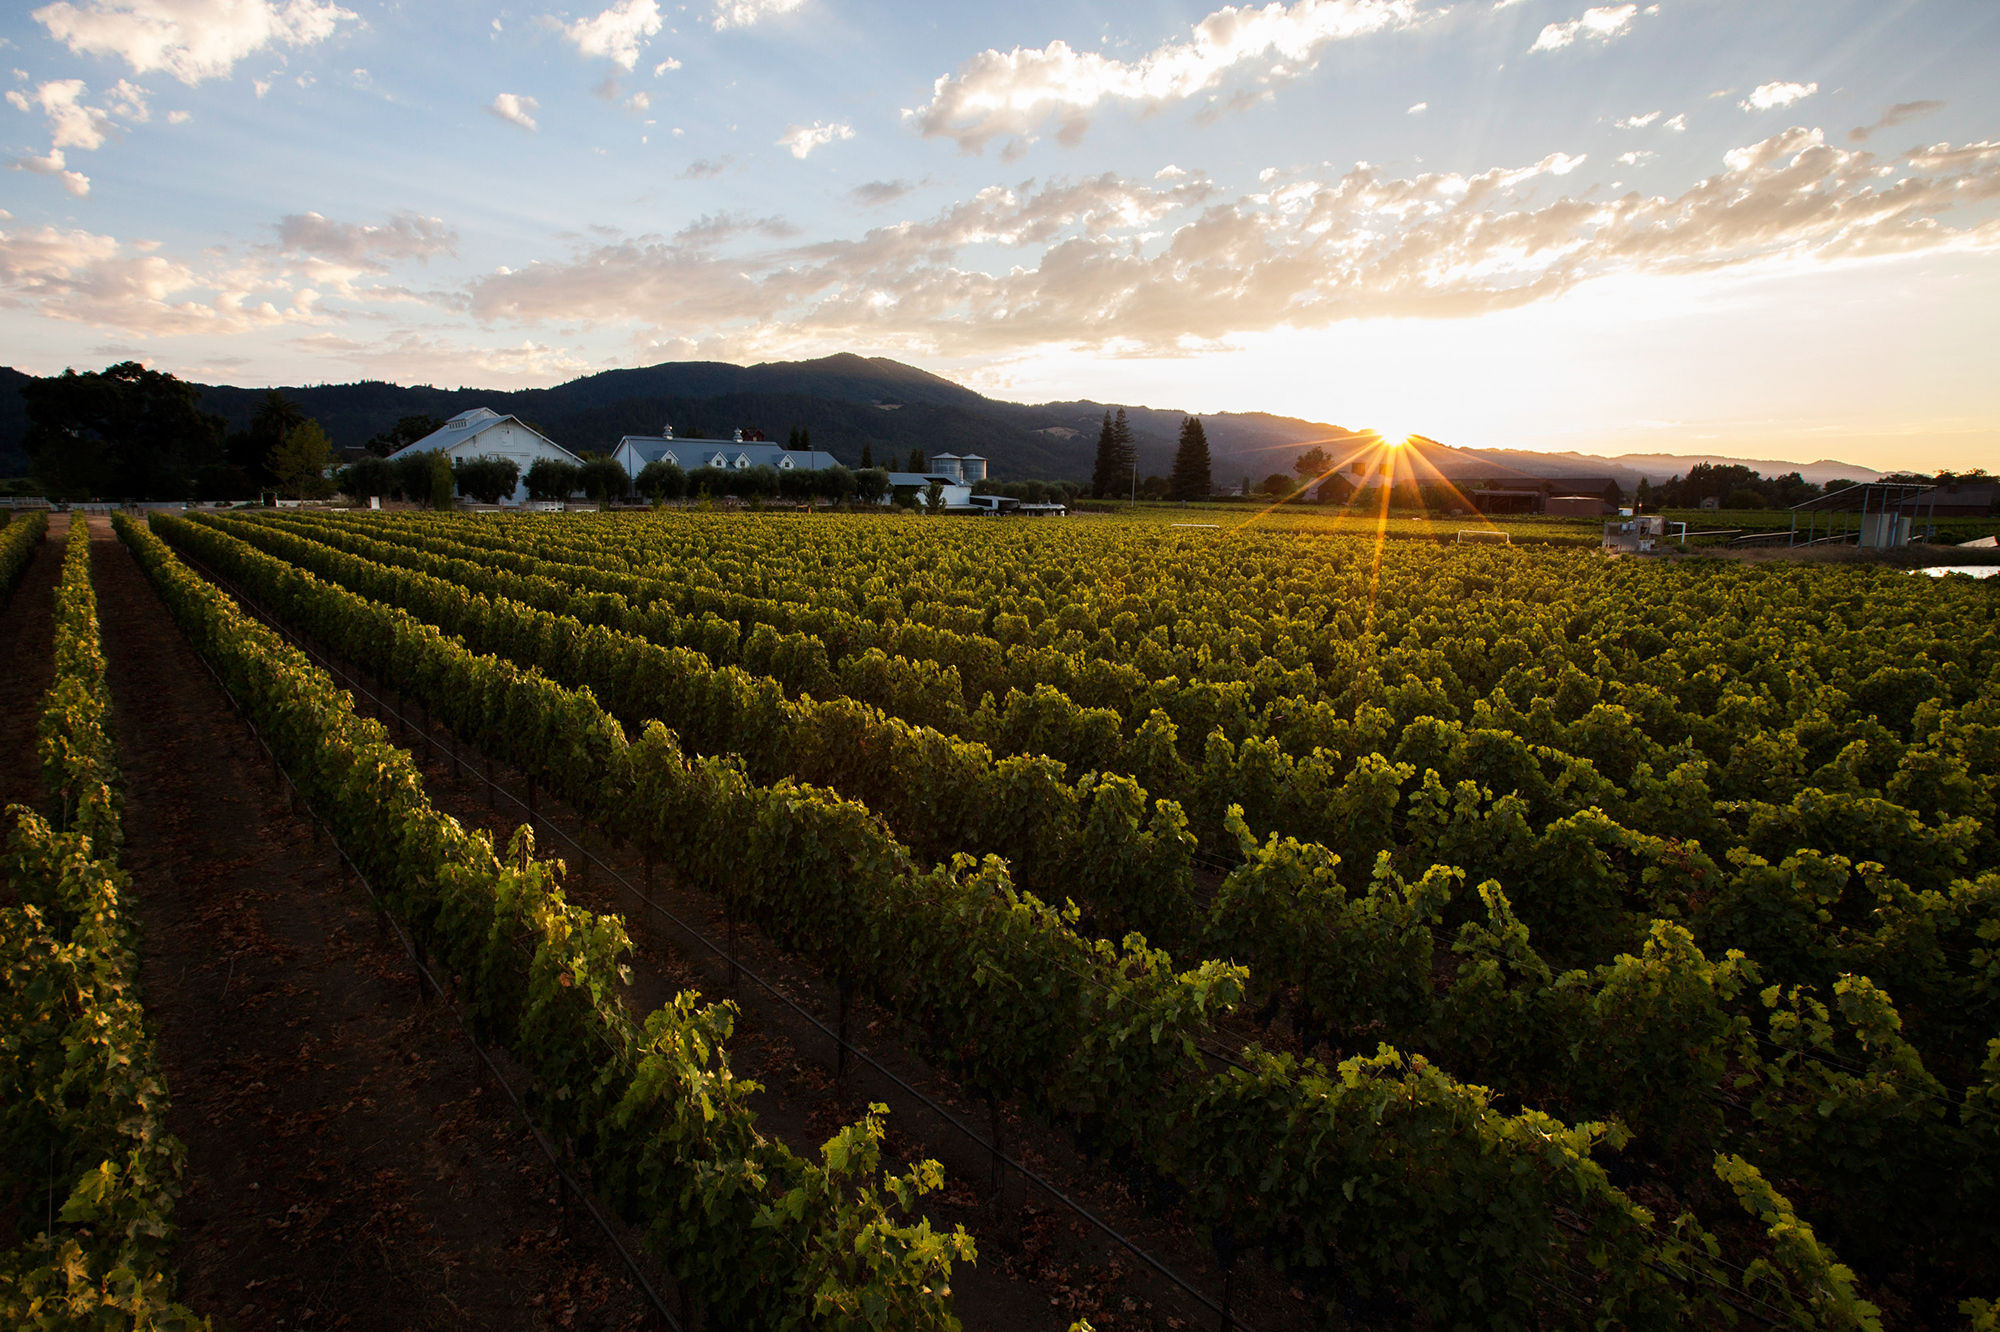 The John C. Sullenger Vineyard at Nickel & Nickel Winery, Napa Valley, Calif. Nickel & Nickel collaborated with scientists to collect wine samples and identify the bacteria and fungi in them by sequencing microbial DNA.